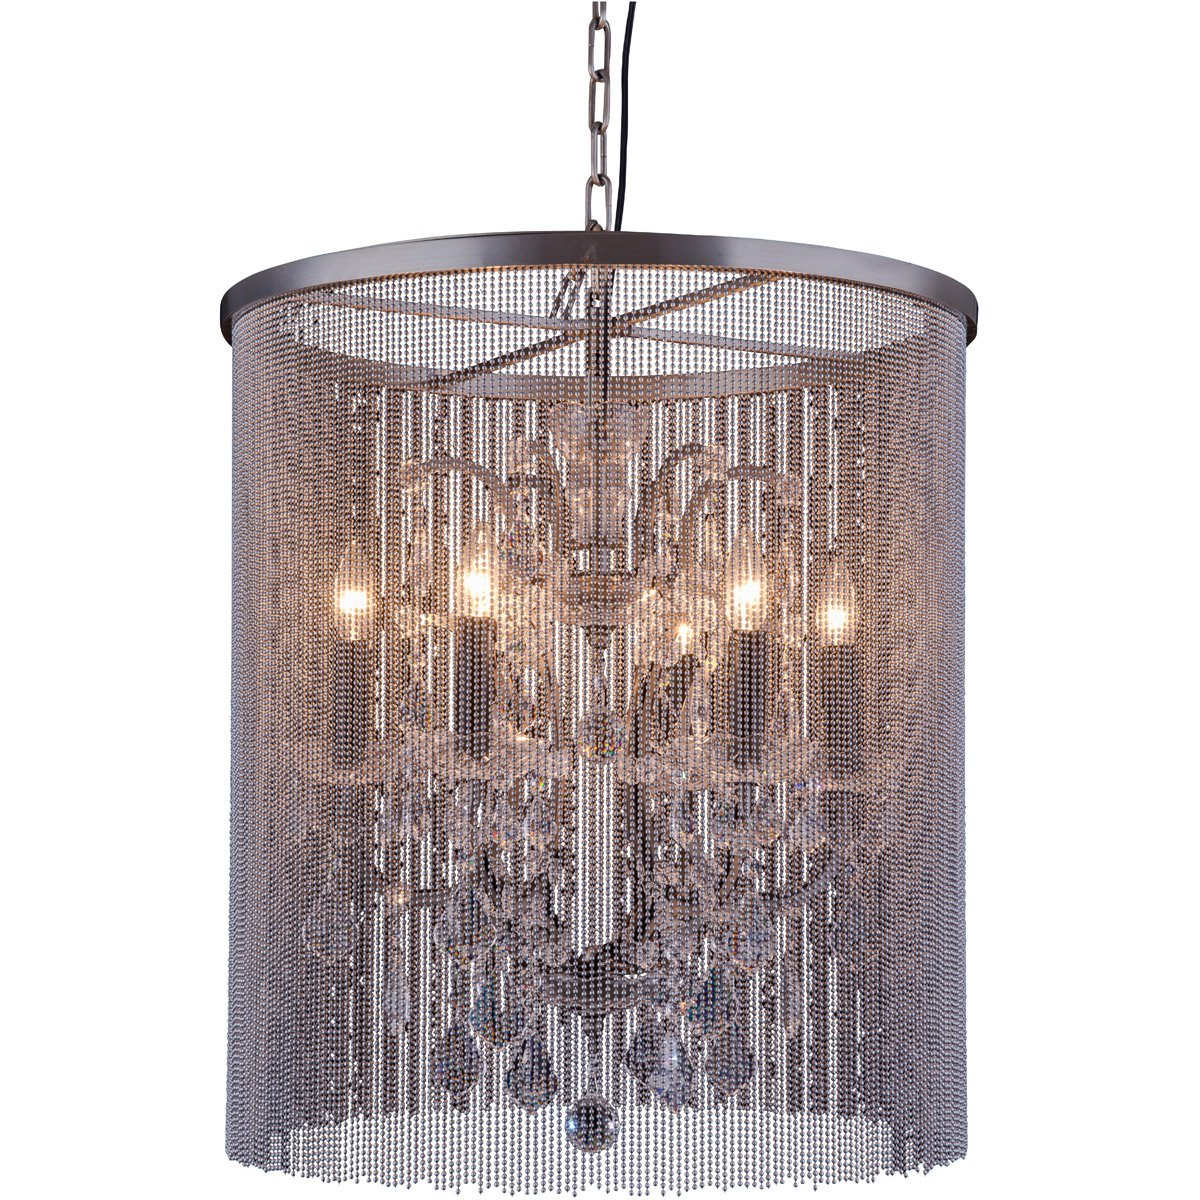 Brooklyn 22 Crystal Pendant Chandelier With 6 Lights - Matte Black Finish Chandelier